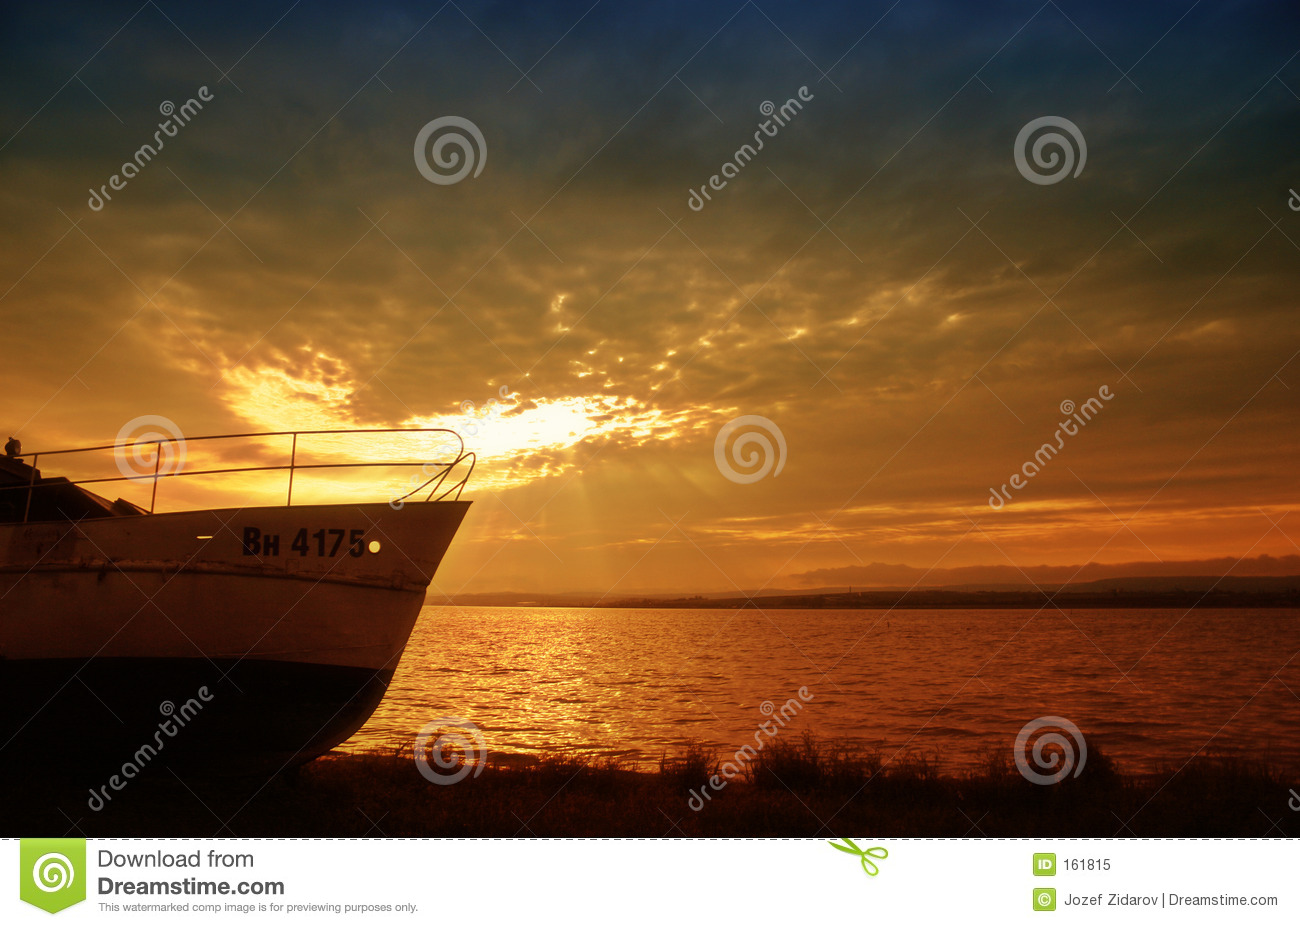 Boat on water with sunset